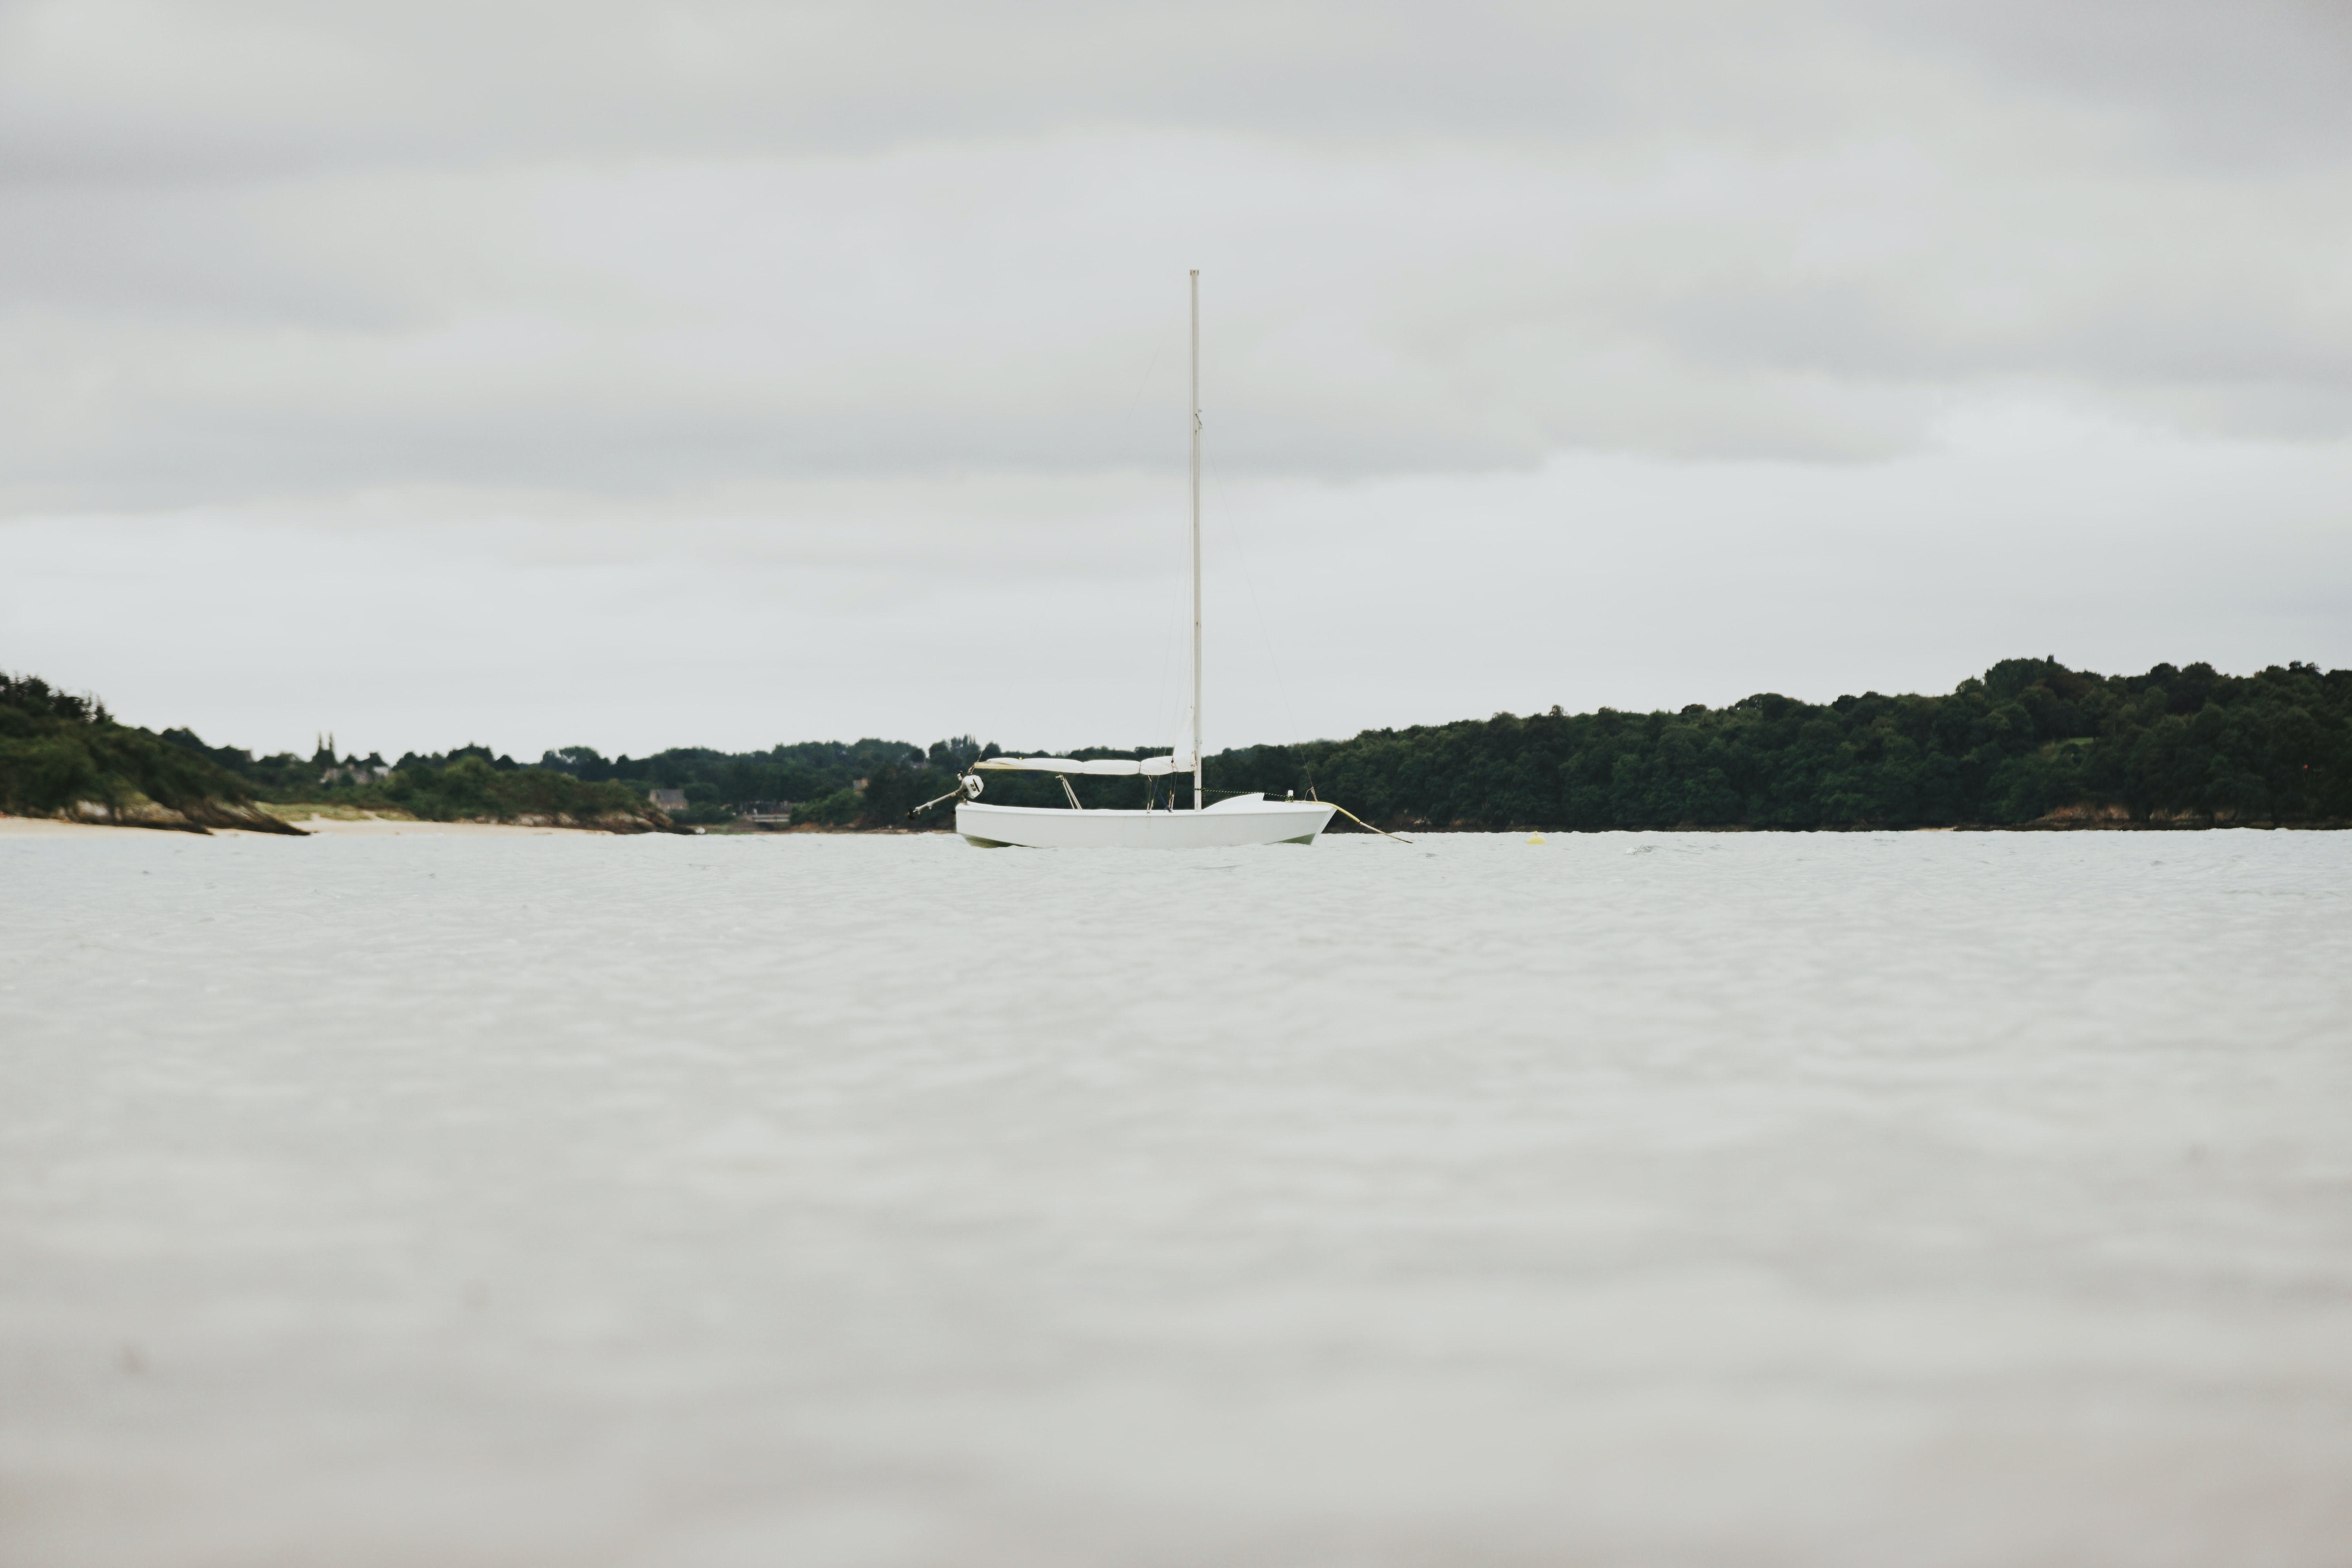 white boat near island during daytime